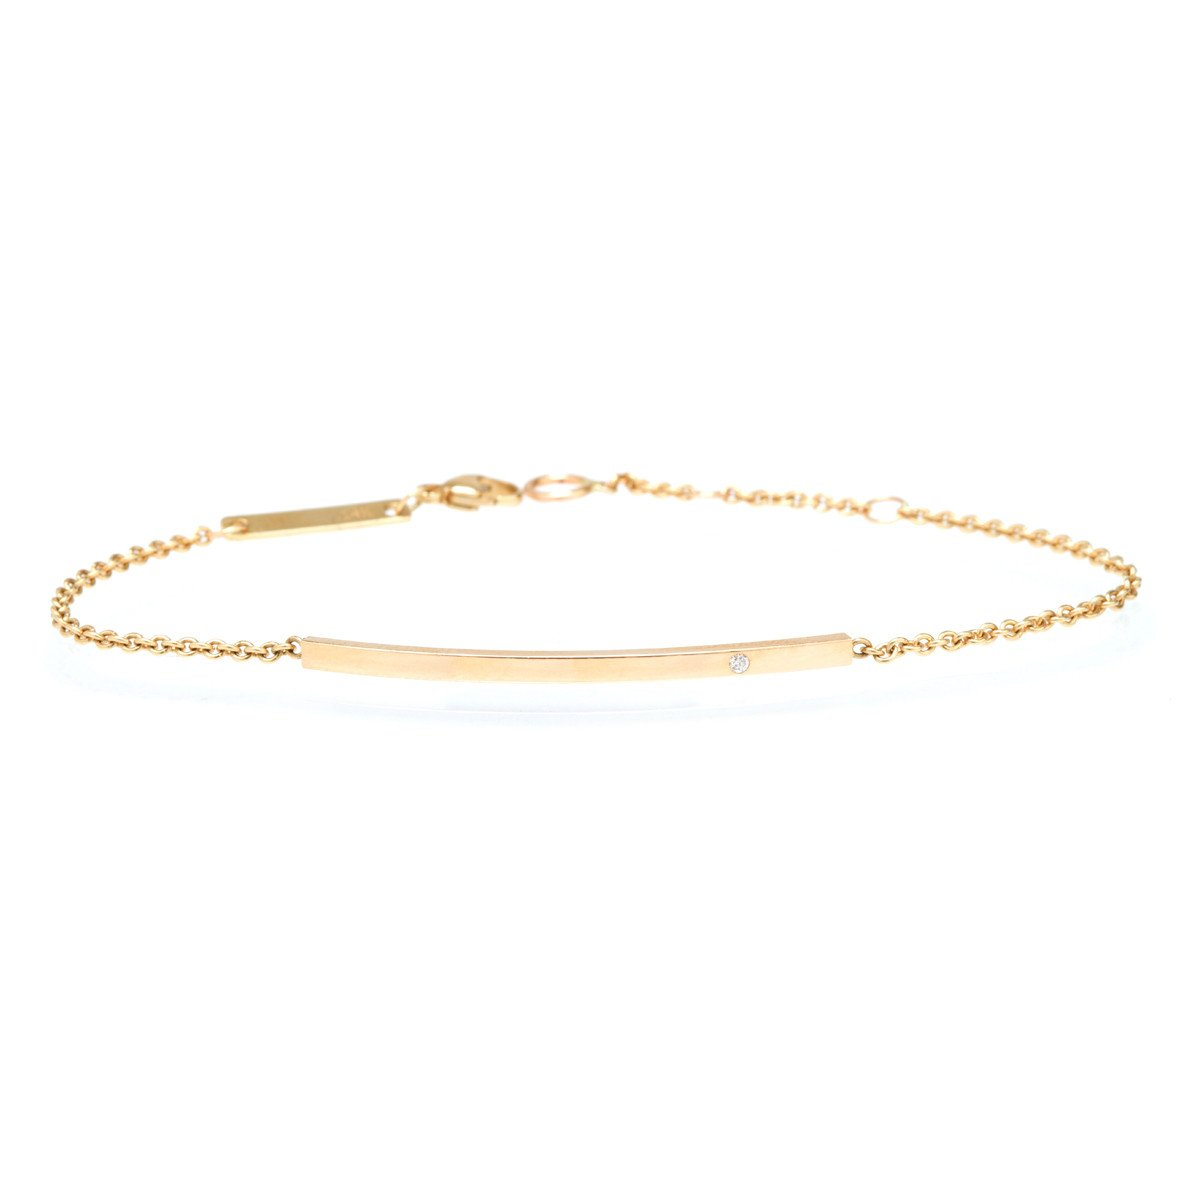 Zoe Chicco 14K Gold Curved Bar Diamond Bracelet